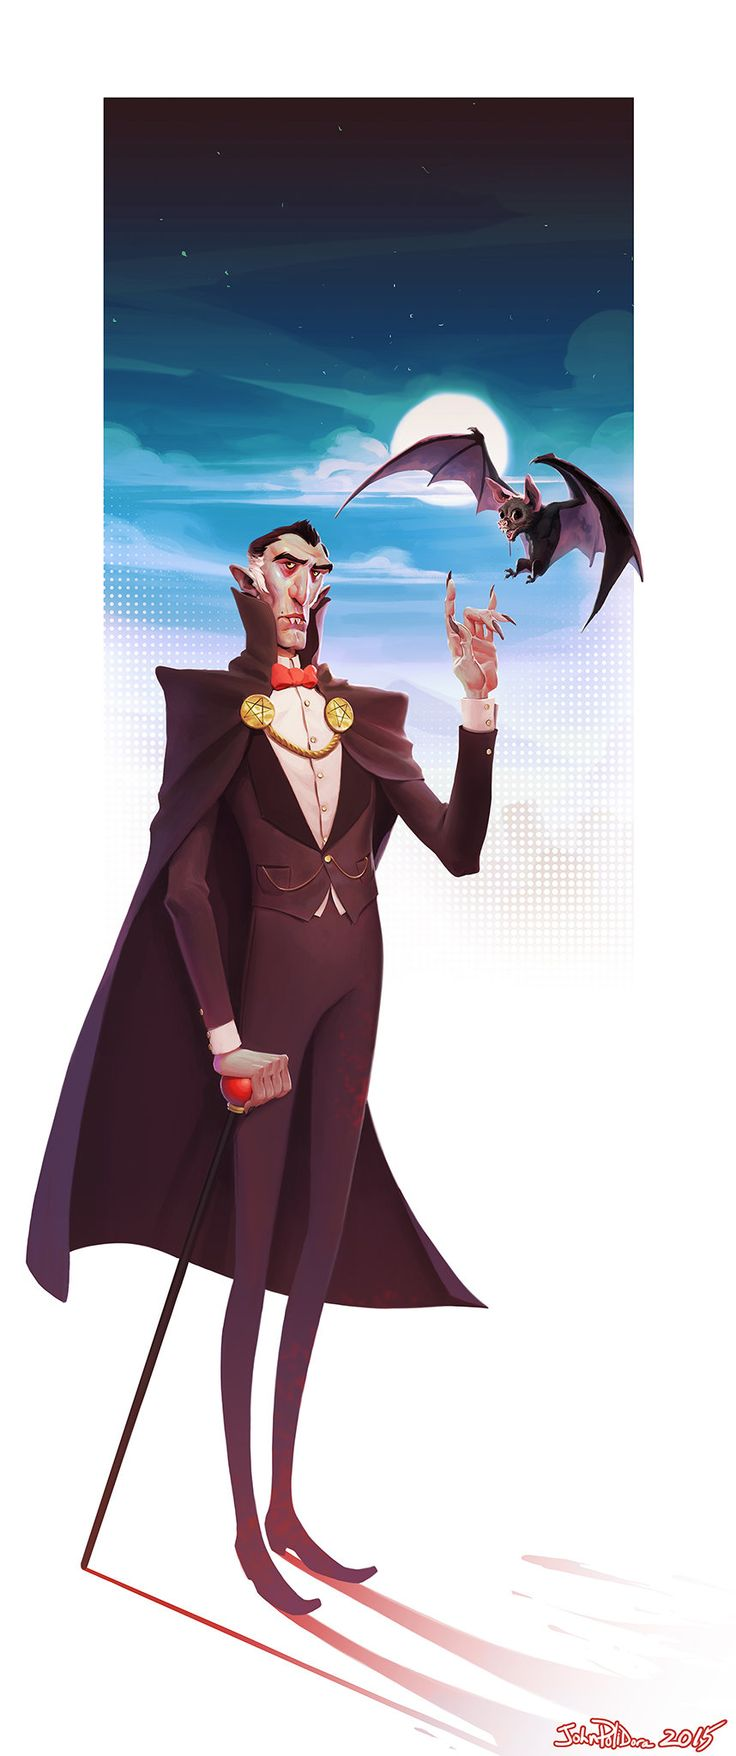 Tonight I went back to this one...FINALLY...and finished it. I call it OG Dracula...referencing what vampires SHOULD look like....contemporary pop culture dreck sucks hard in comparison to classic portrayals, such as Bela Lugosi's Dracula, and the original Nosferatu.